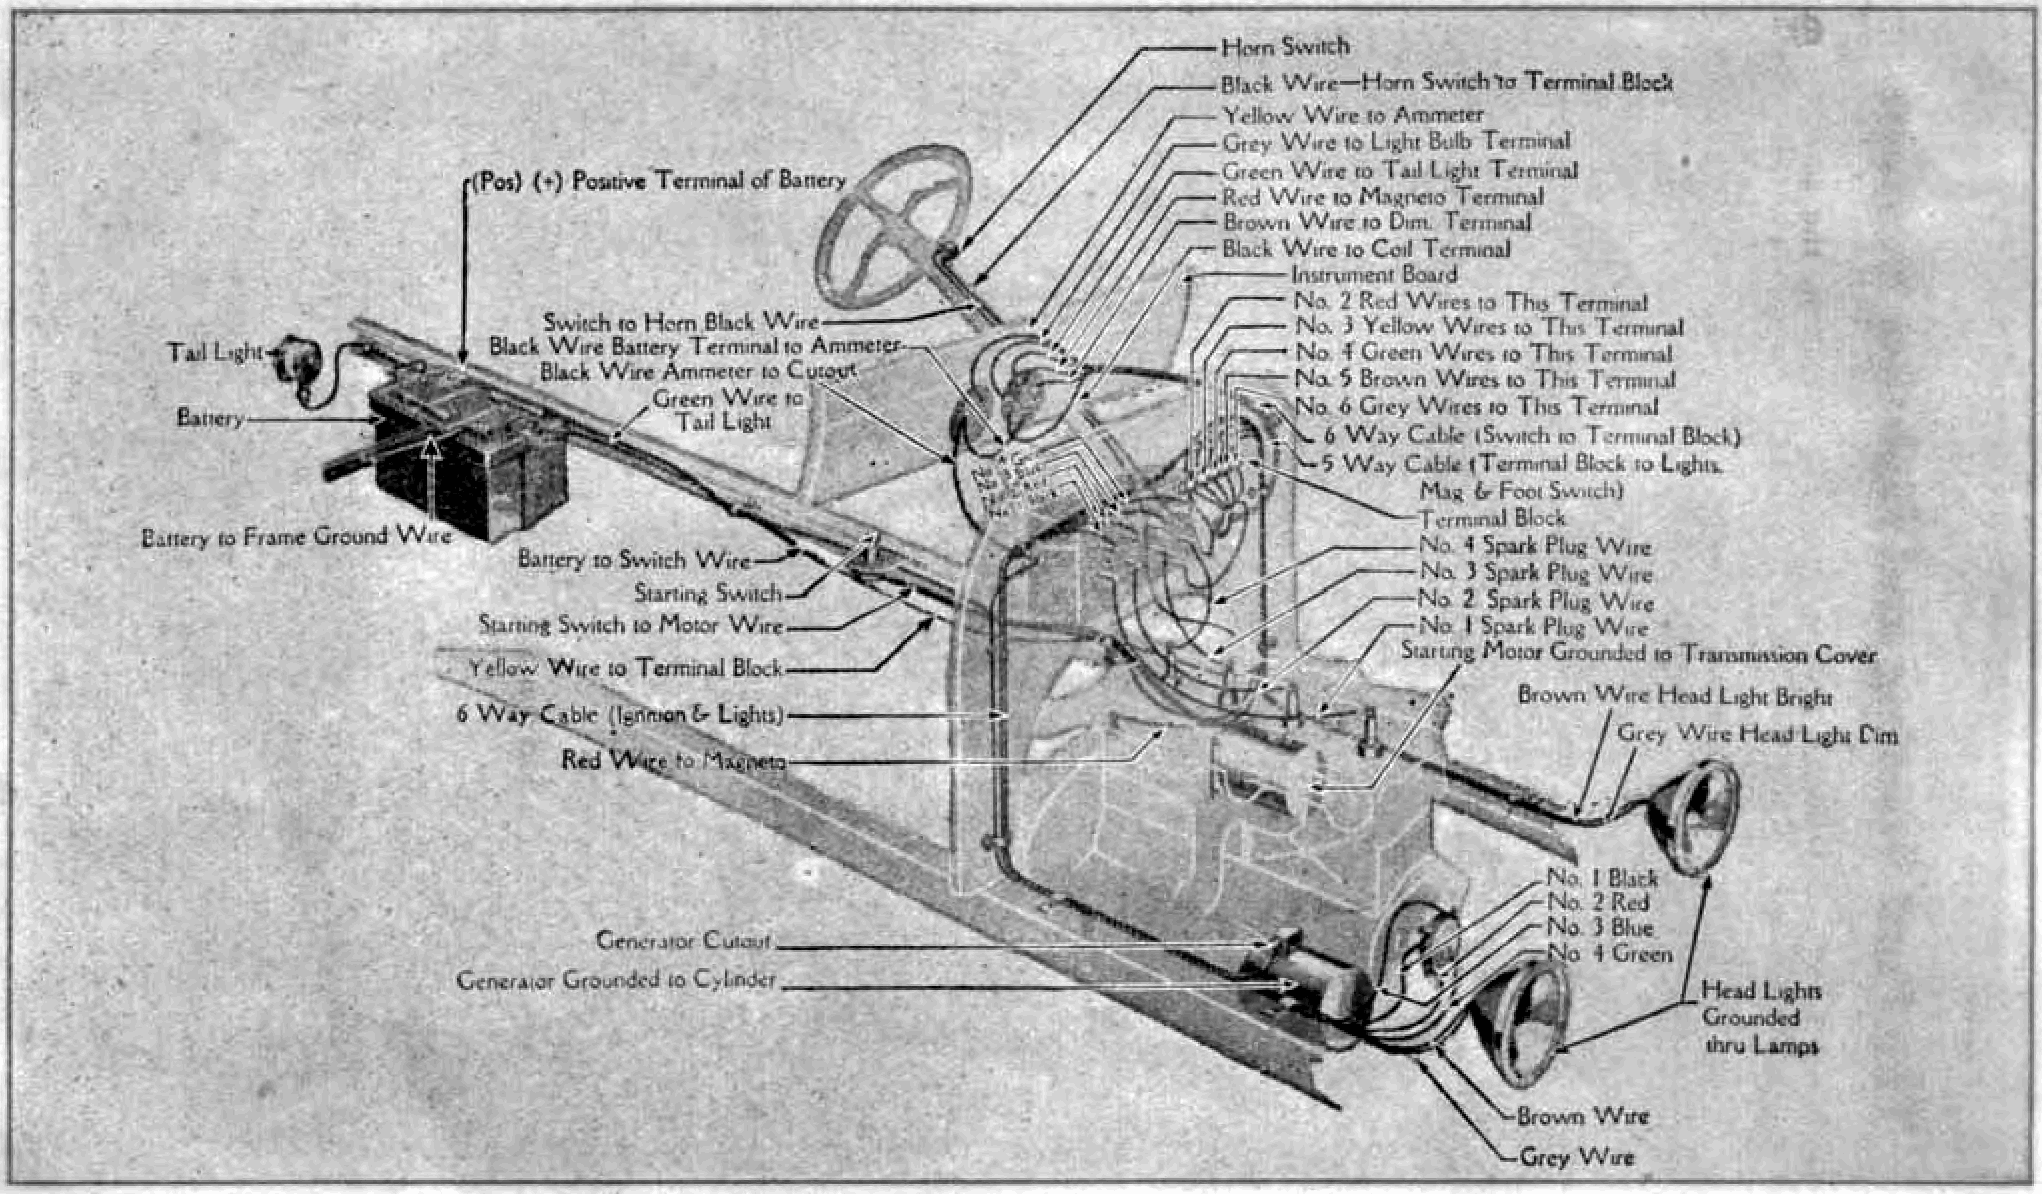 Ford Amp Meter Wiring Diagram Model Y Library File T 1919 D055 Of Cars Equipped With A Spark